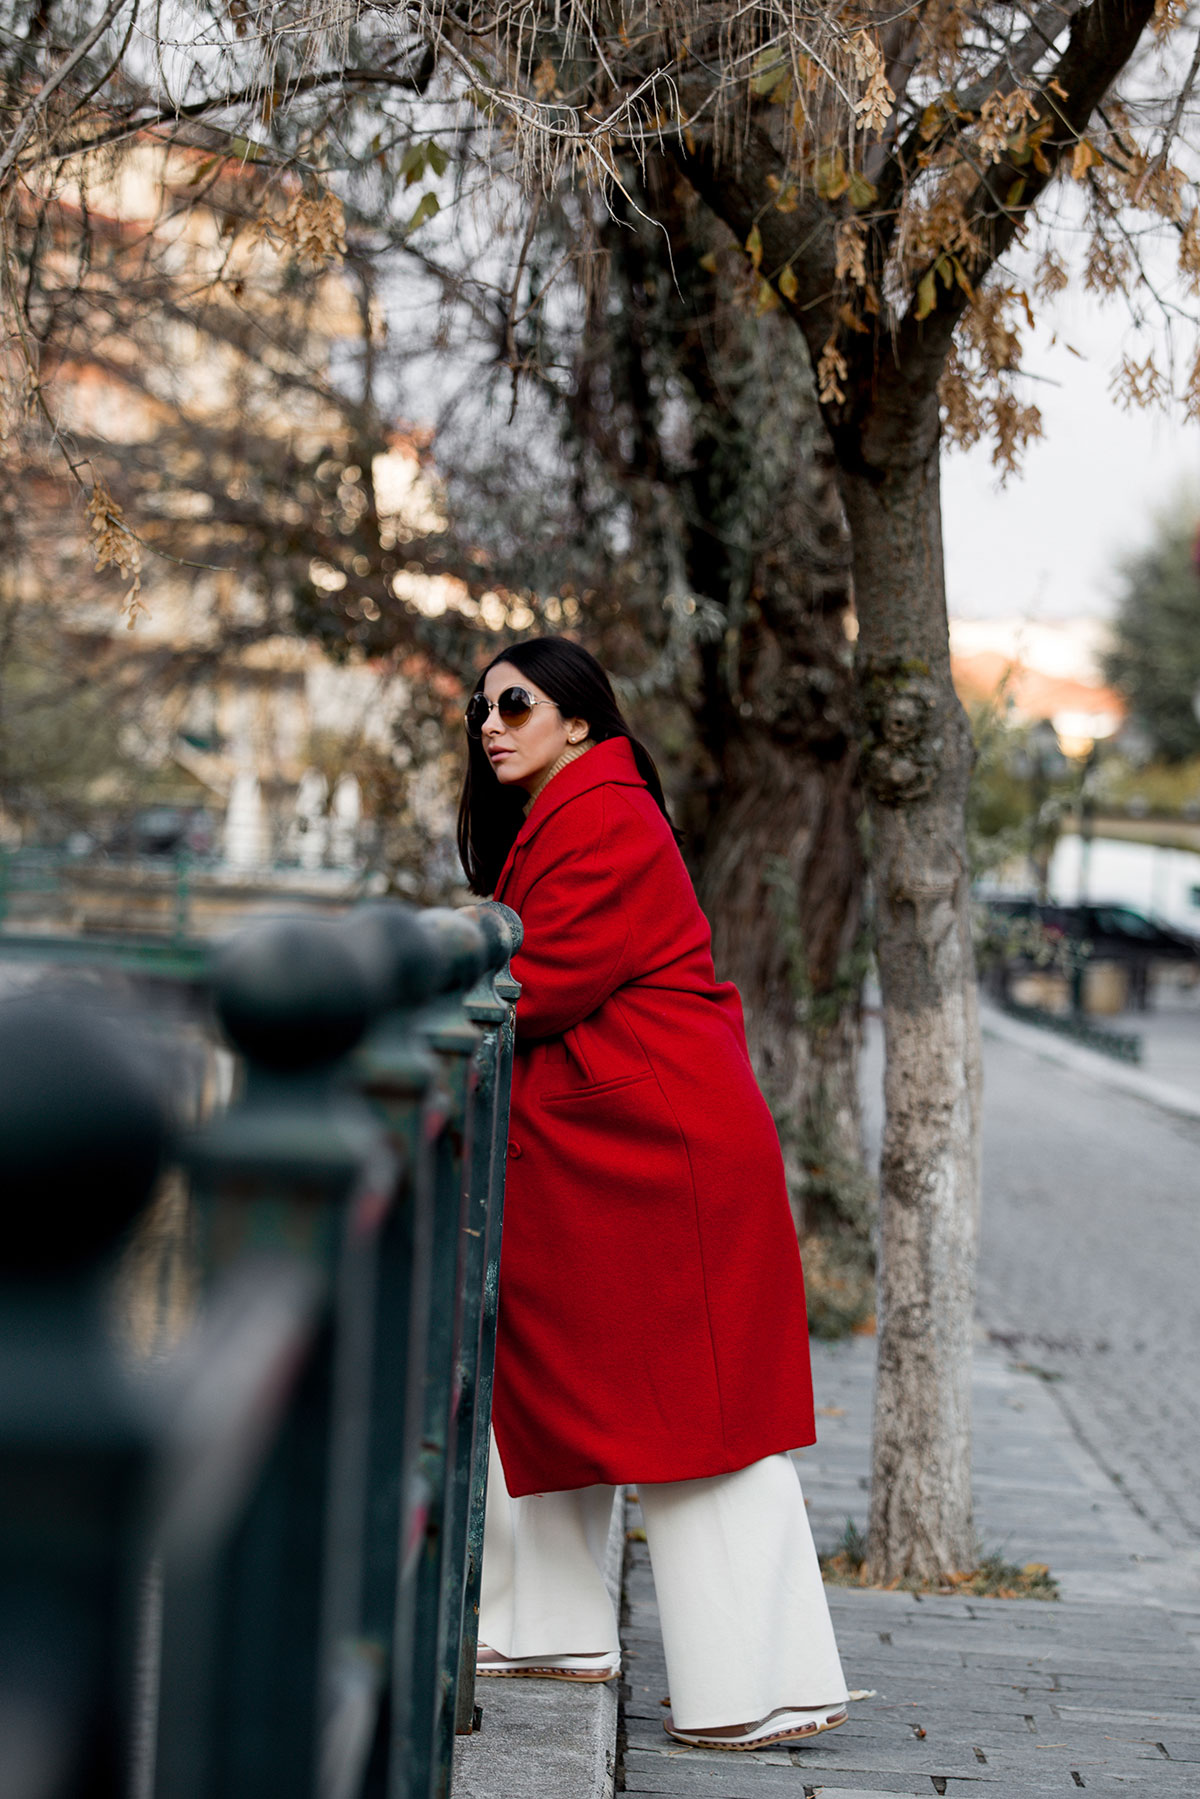 How To Wear A Red Coat - Stella Asteria wearing red coat with beige neutrals, pink Nike millennium sneakers, Louis Vuitton Palm Springs backpack and Chloe sunglasses